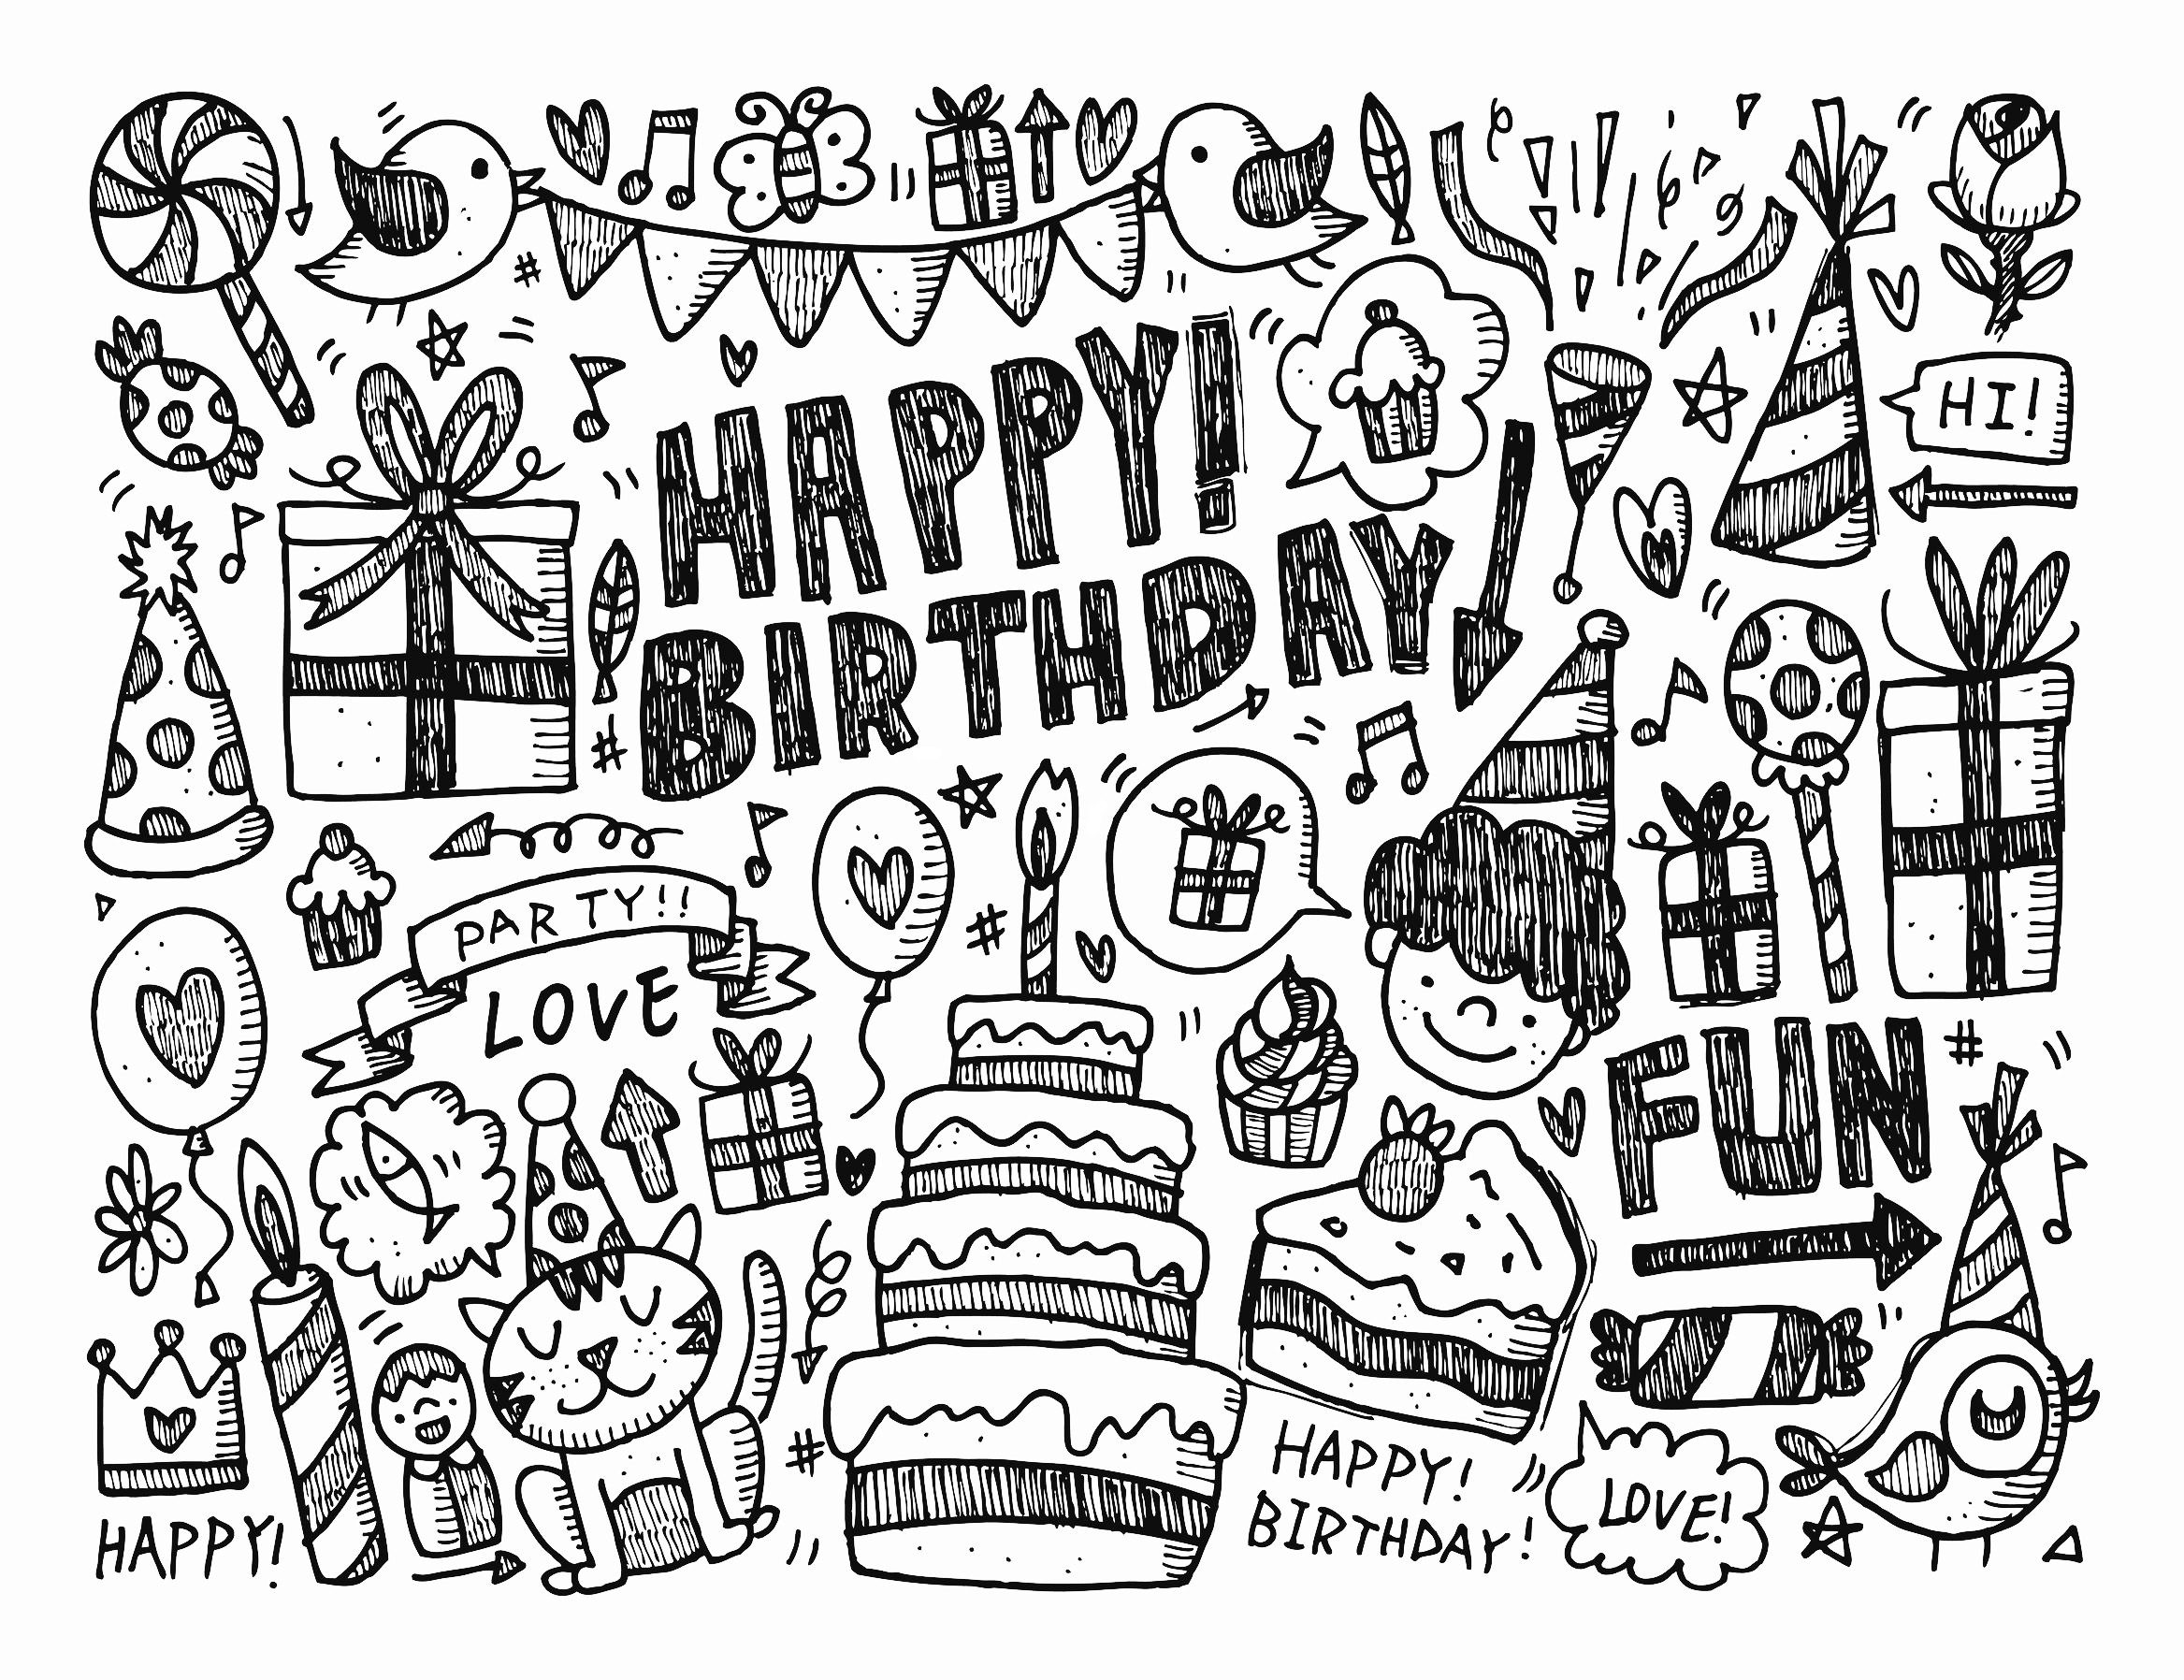 coloring pages for adults quotes - image=doodle art doodling coloring doodle happy birthday by notkoo2008 1